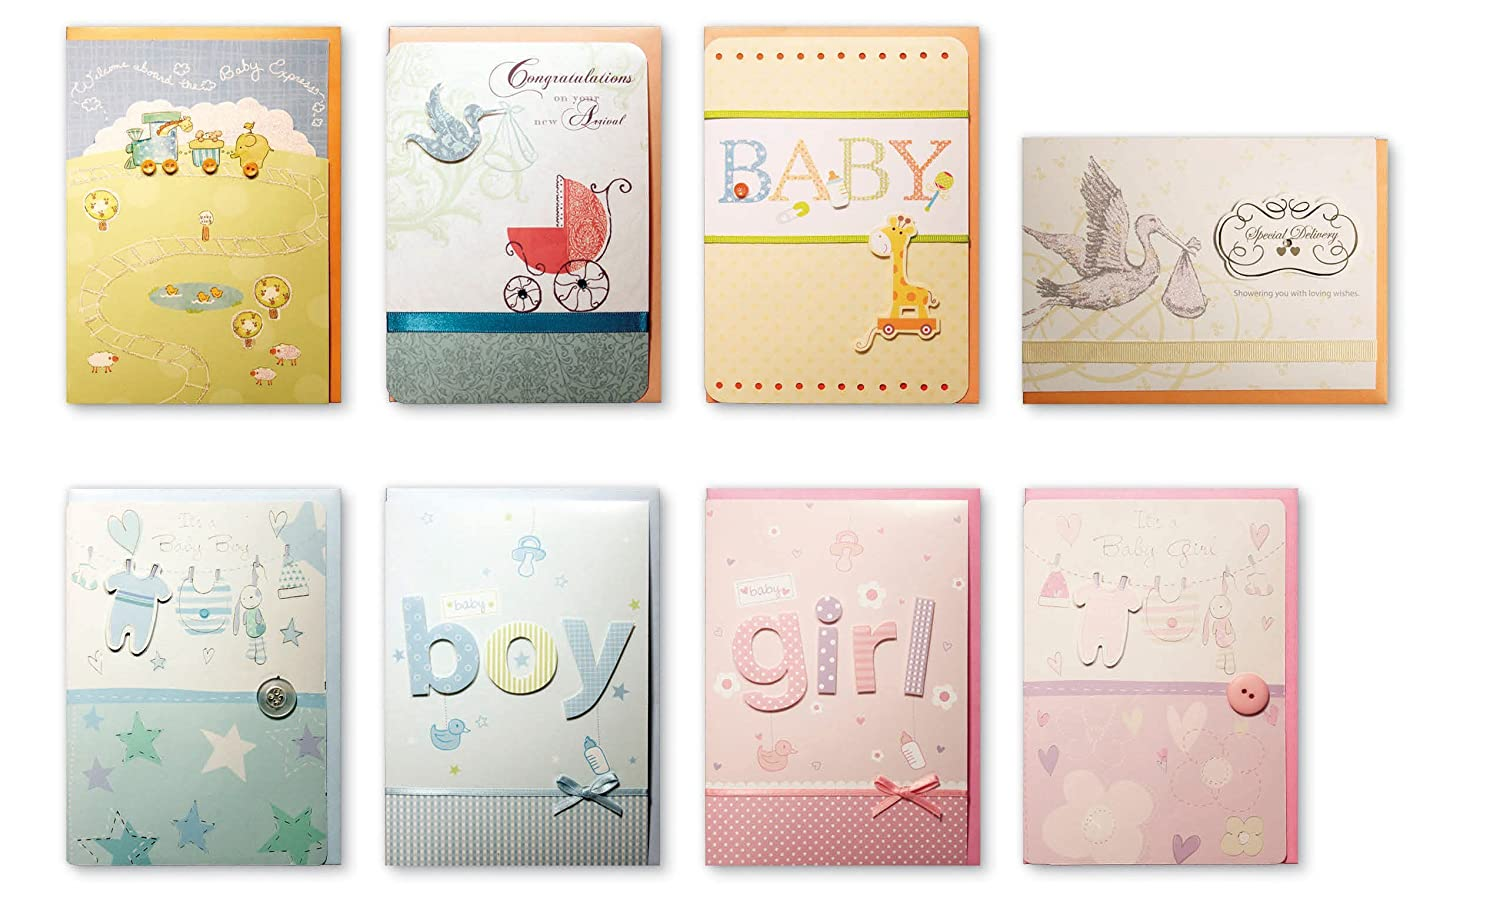 Amazon Assorted Congratulations Wishes For Baby Cards Box Set 8